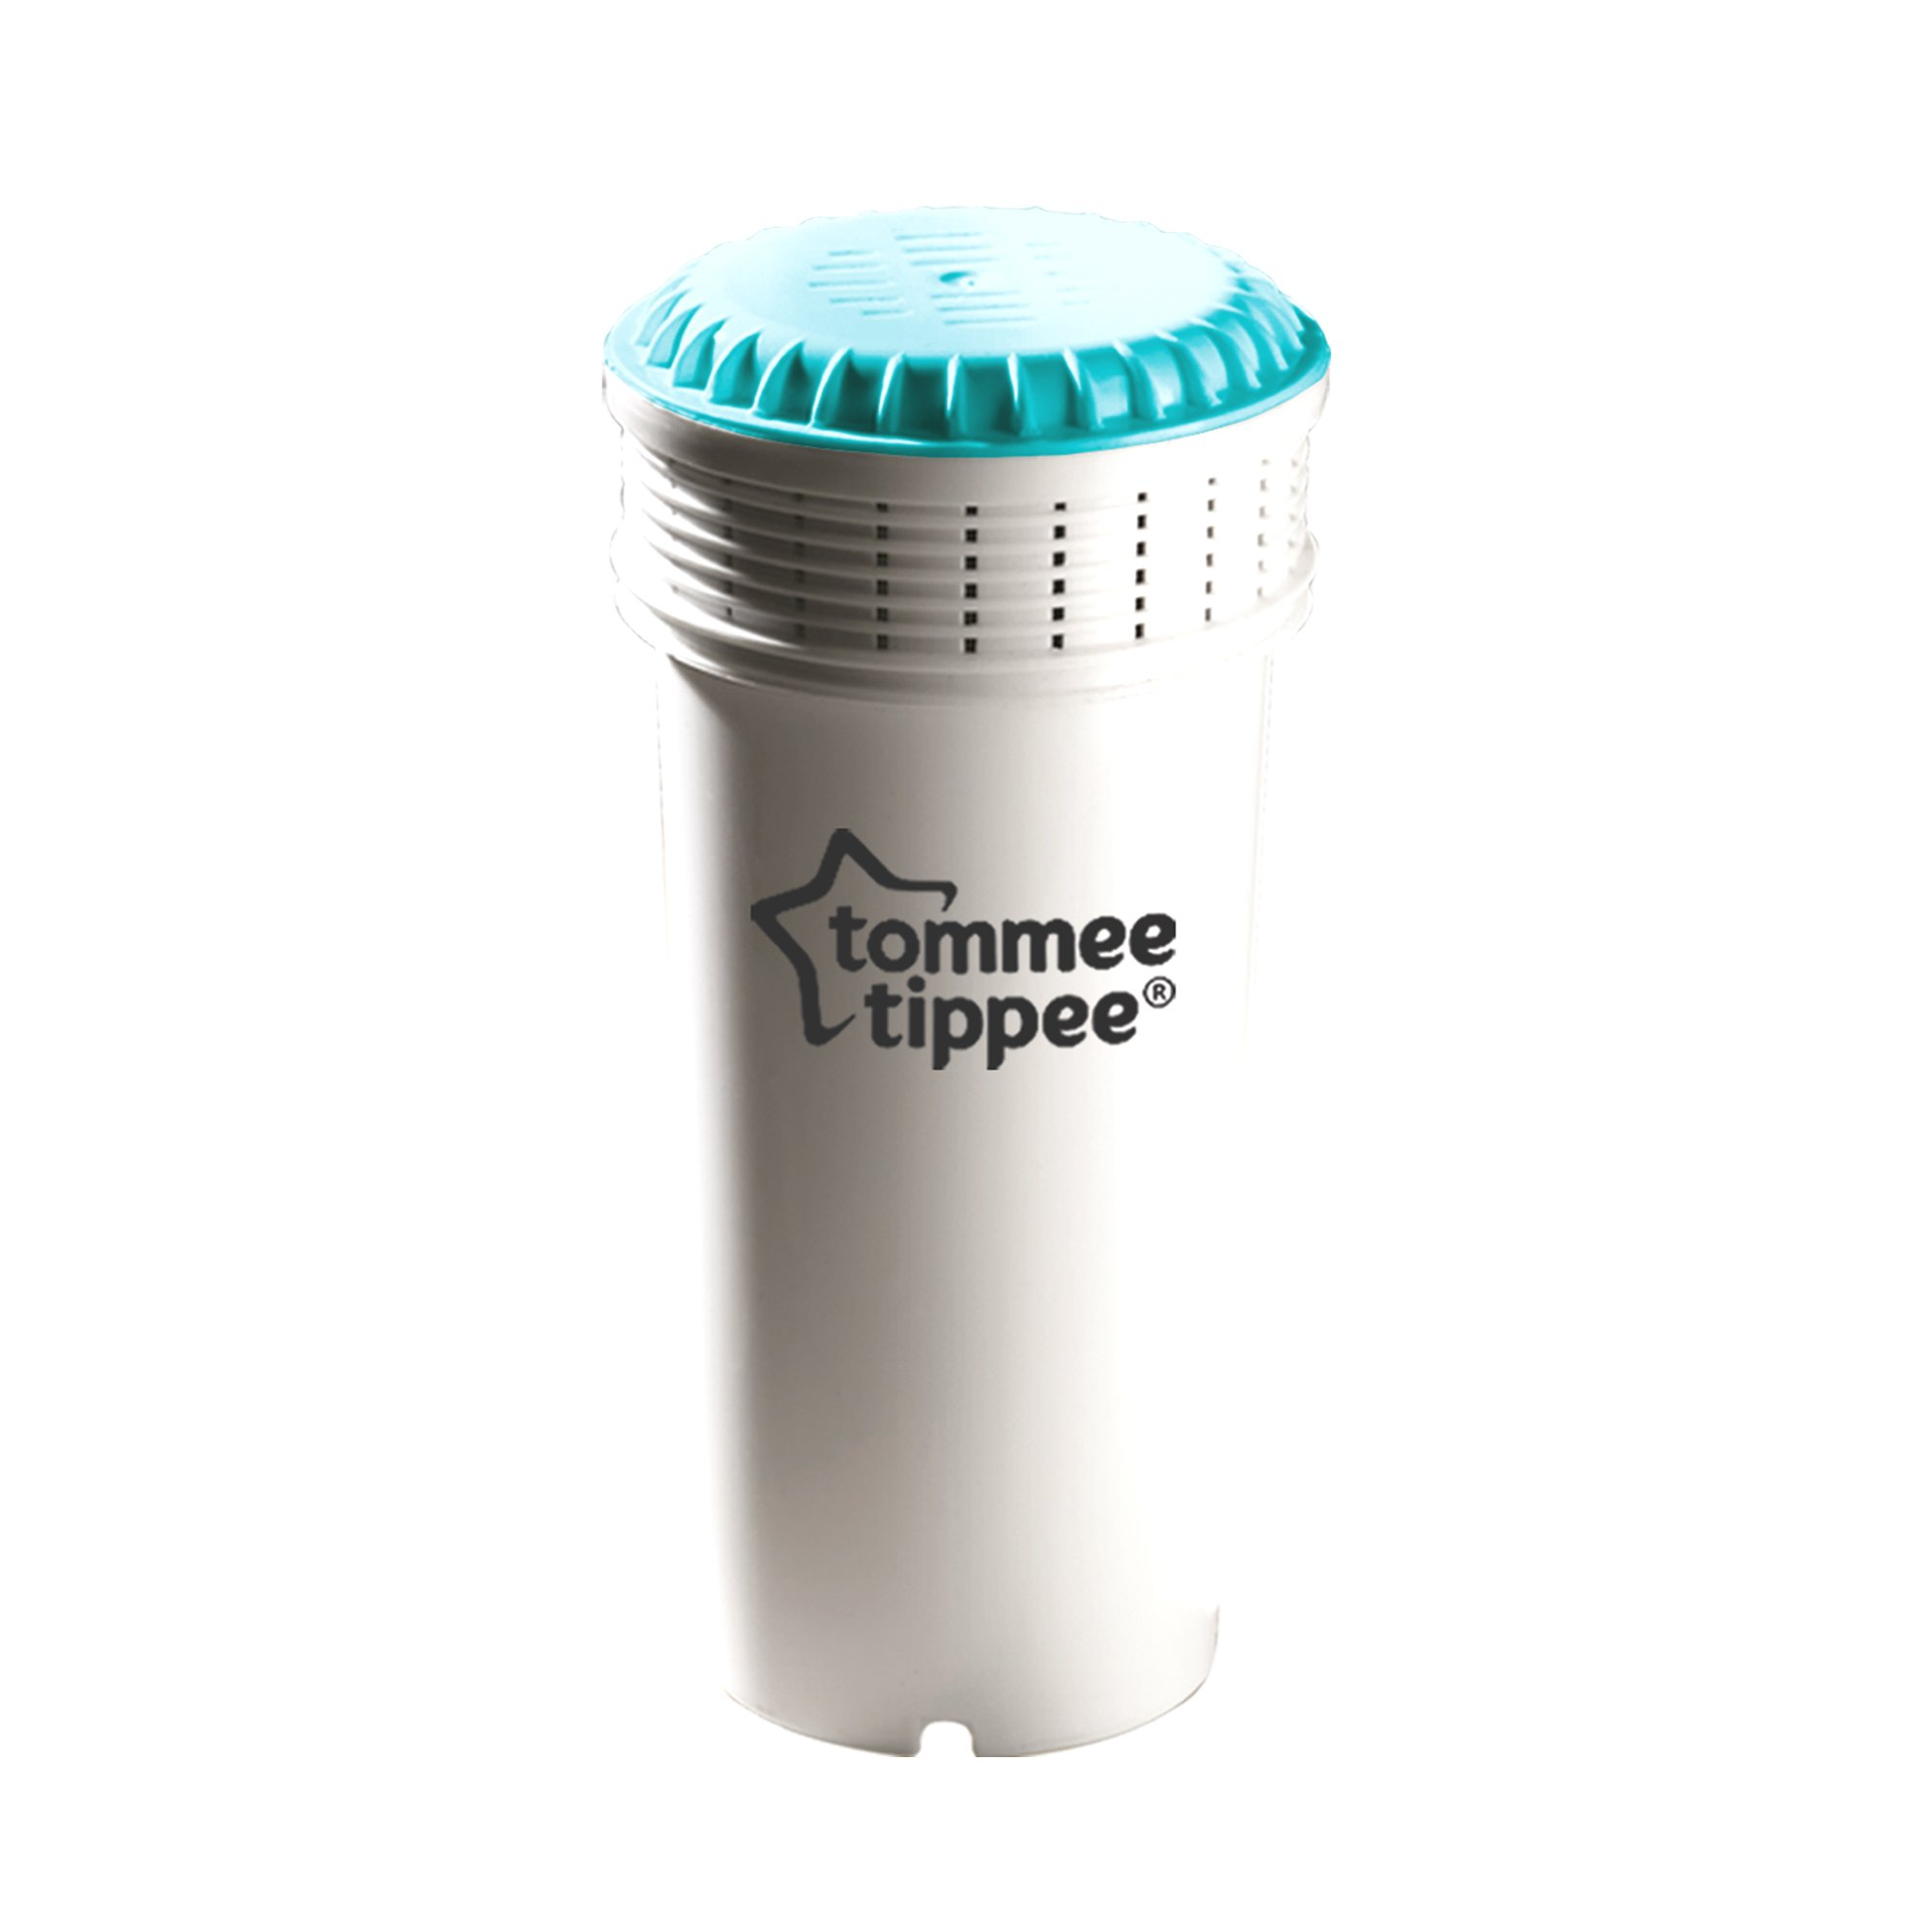 Tommee Tippee Perfect Prep Replacement Filter by BabyCenter